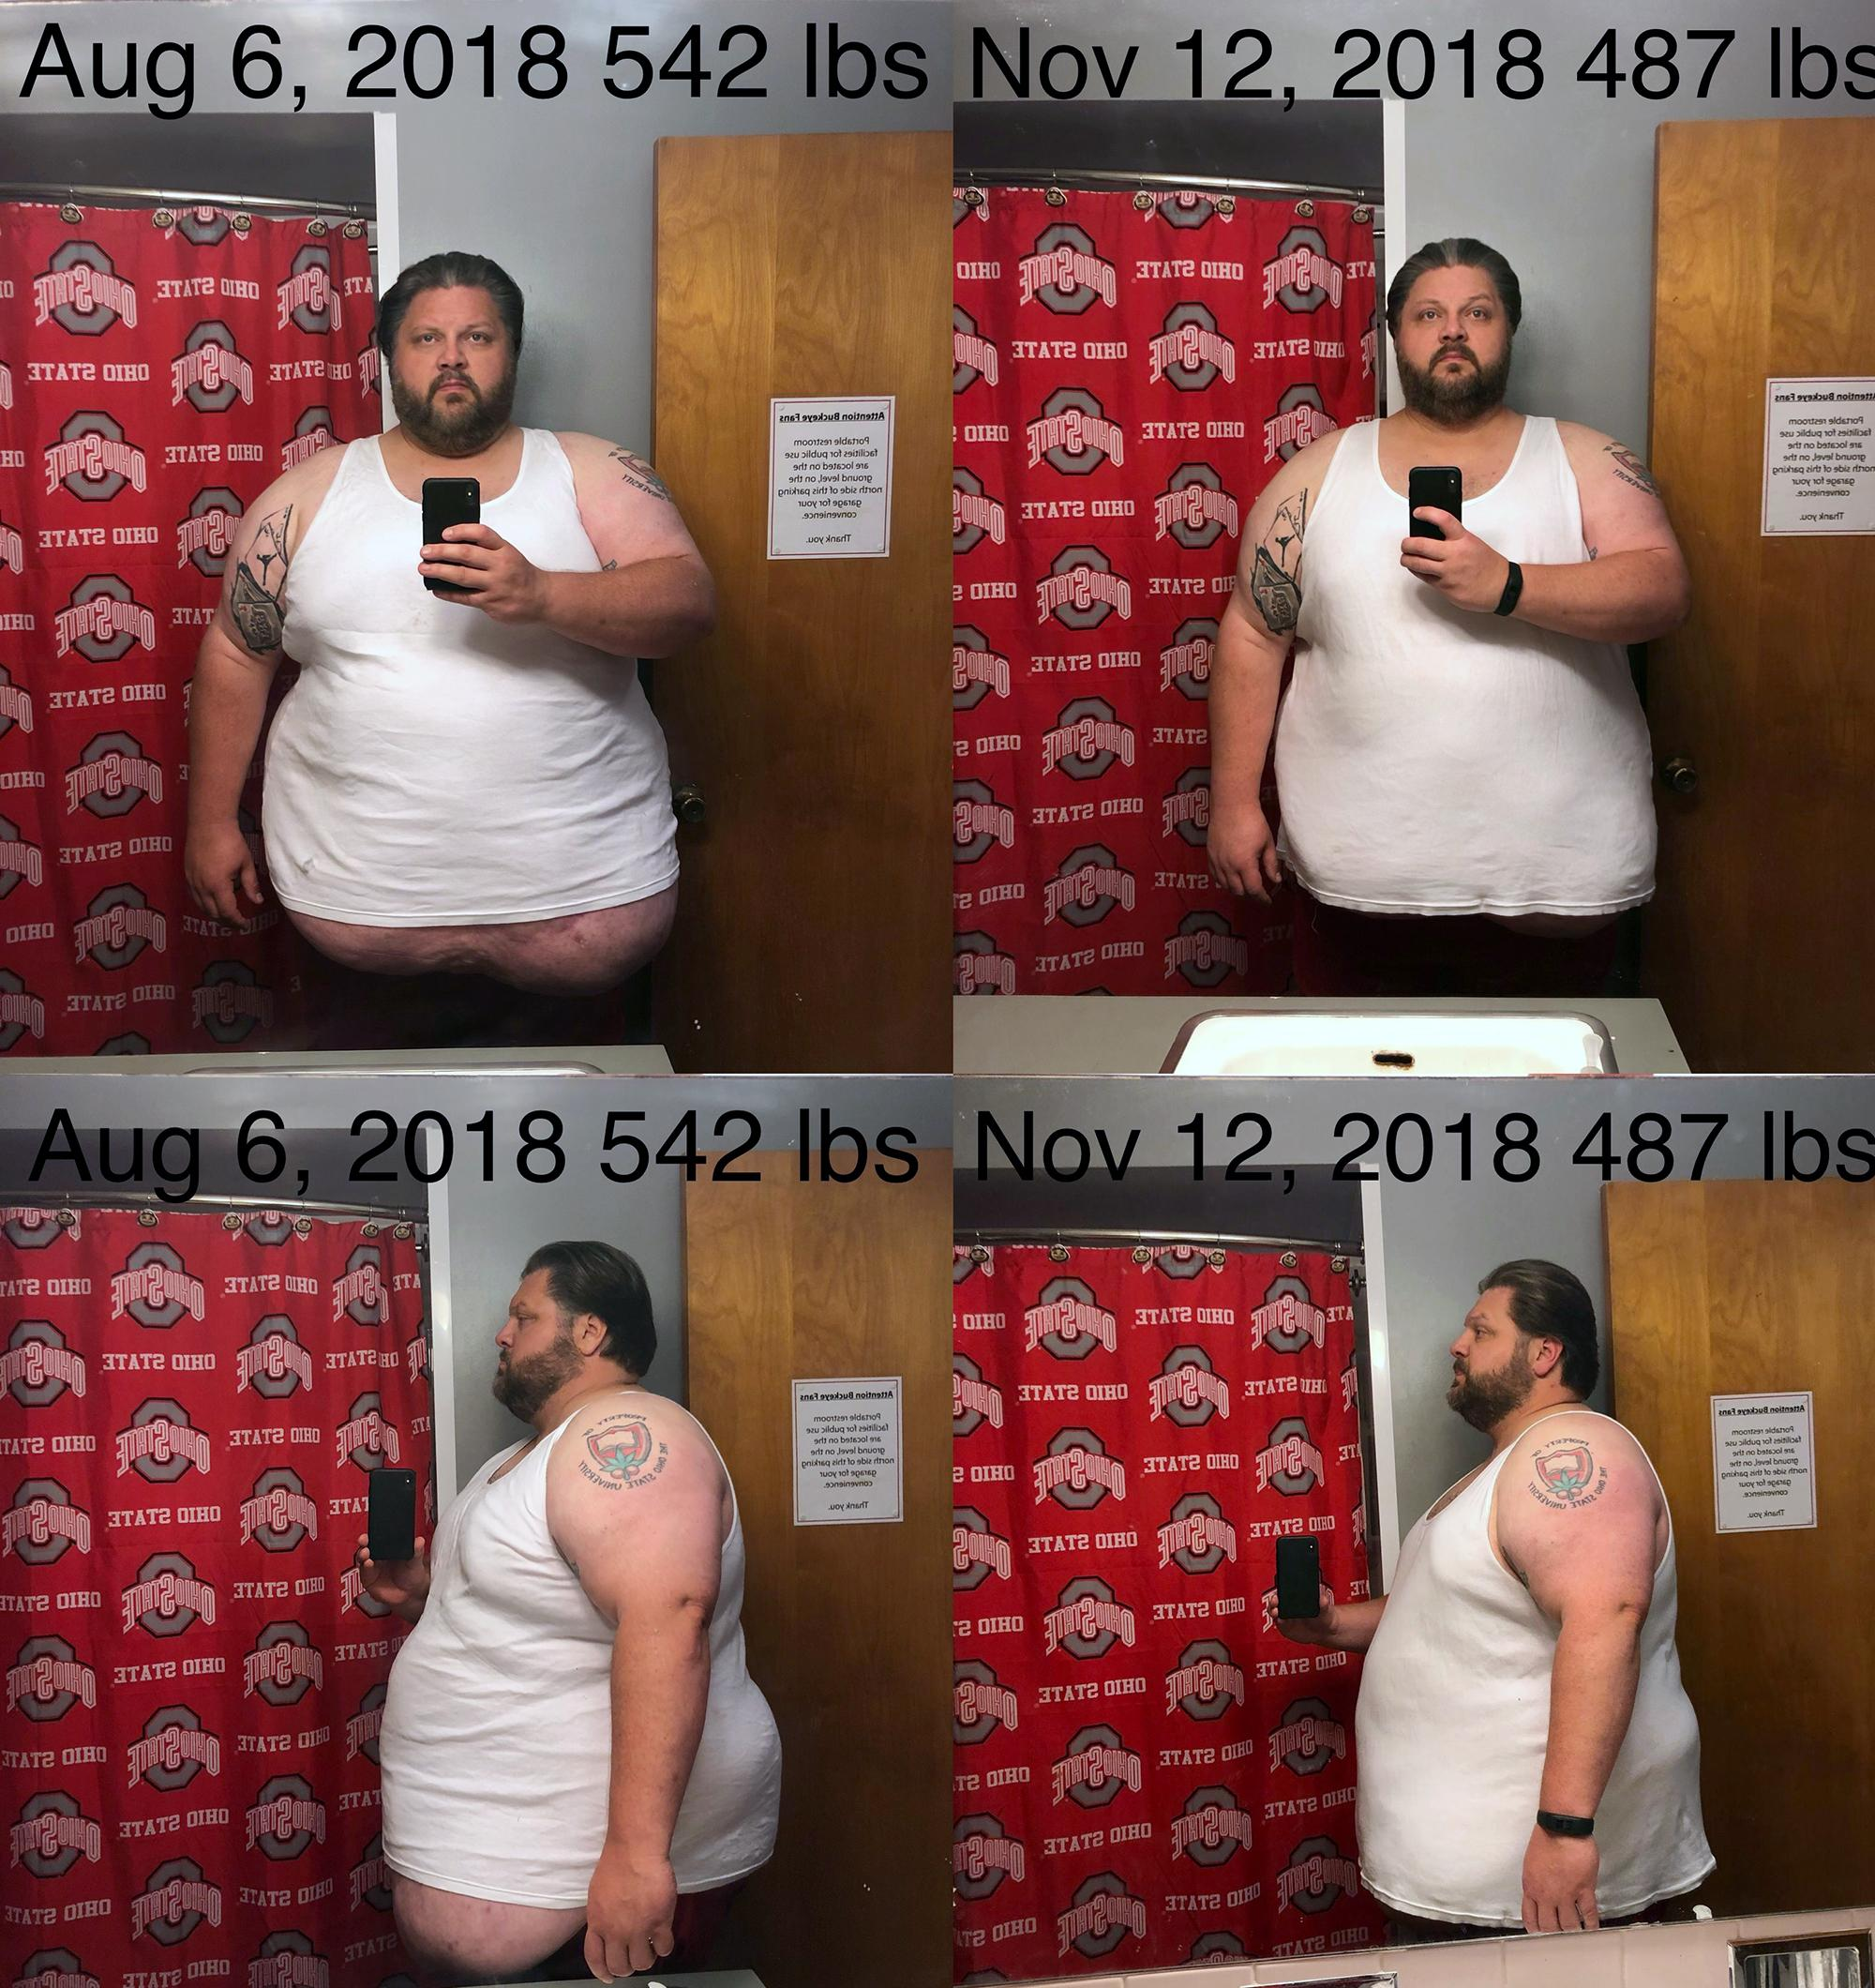 6'1 Male Before and After 55 lbs Fat Loss 542 lbs to 487 lbs